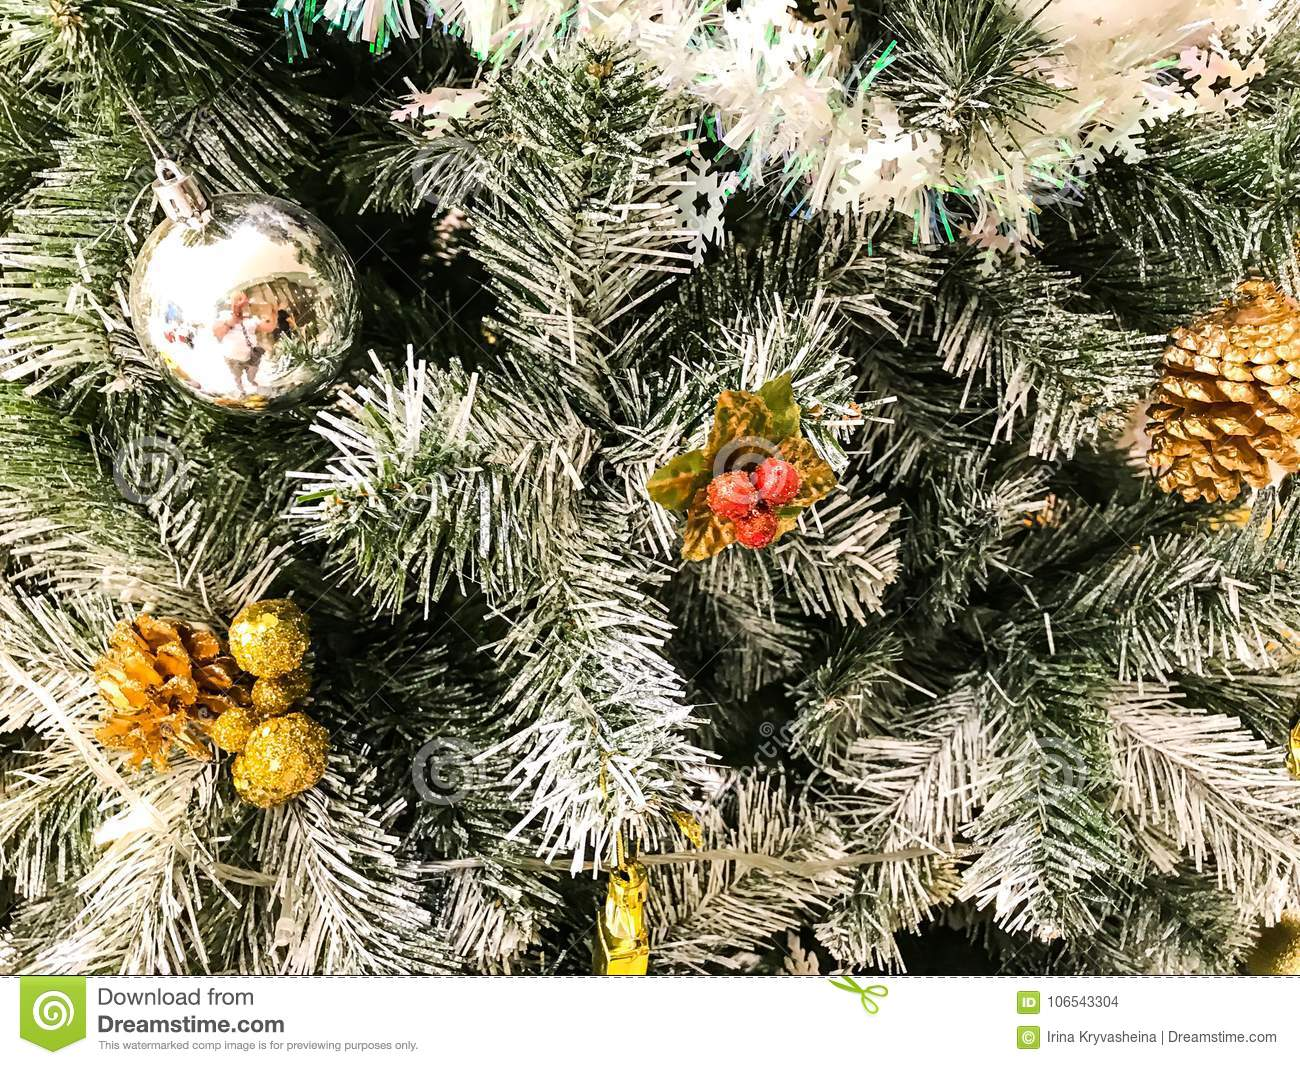 download elegant christmas background and christmas tree decorations stock photo image of green - Elegant Christmas Tree Decorations